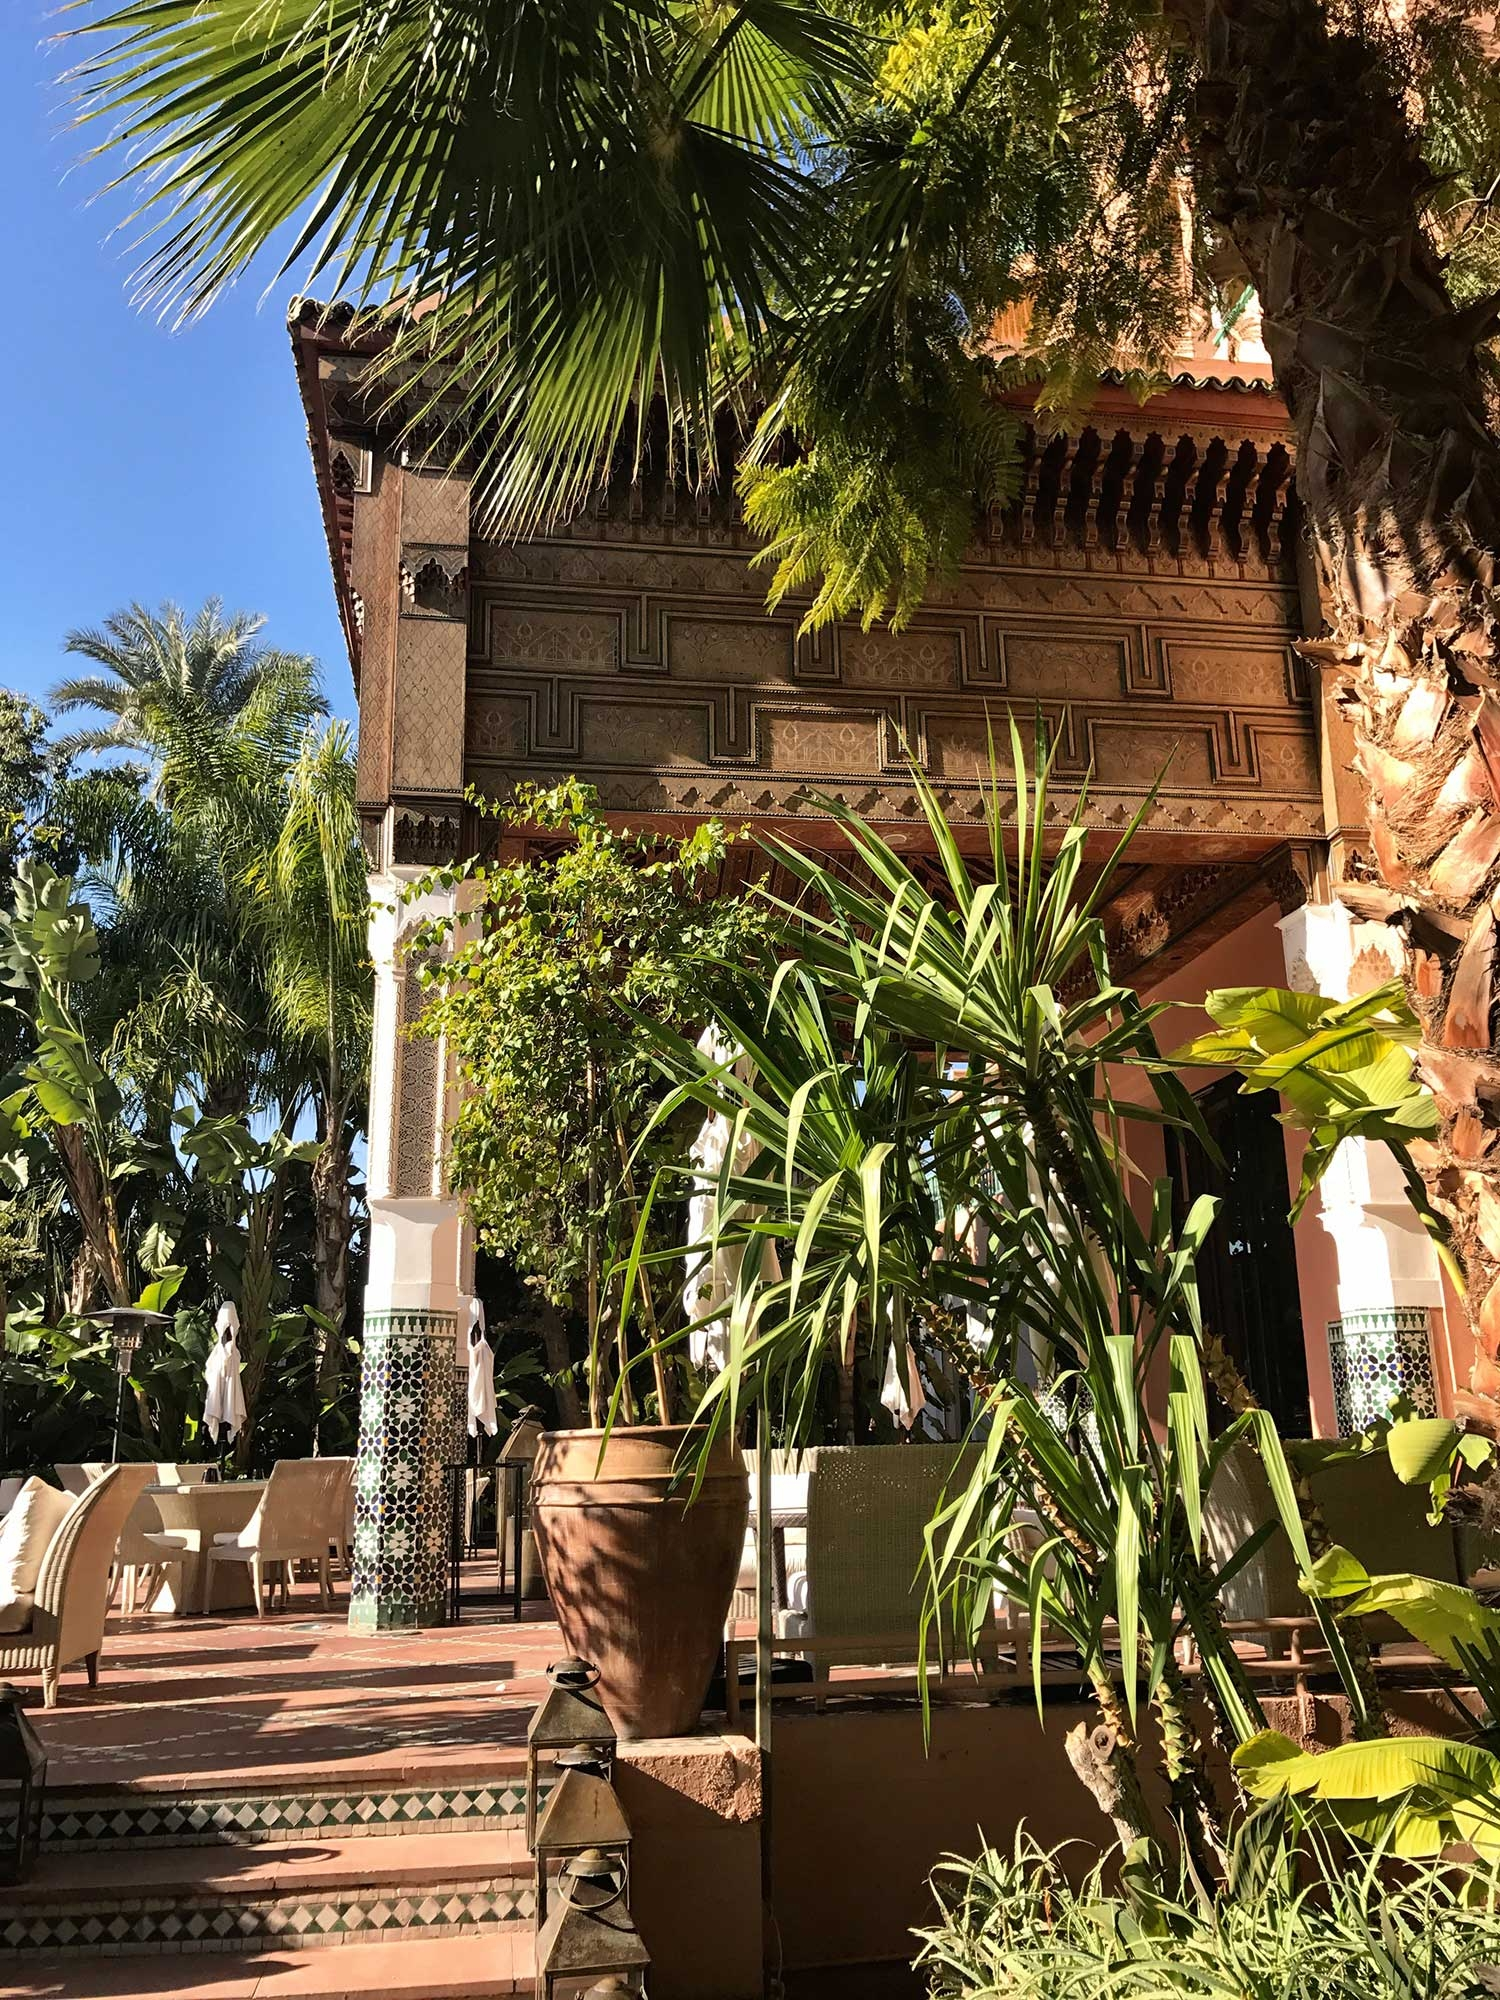 Walking the gardens at La Mamounia